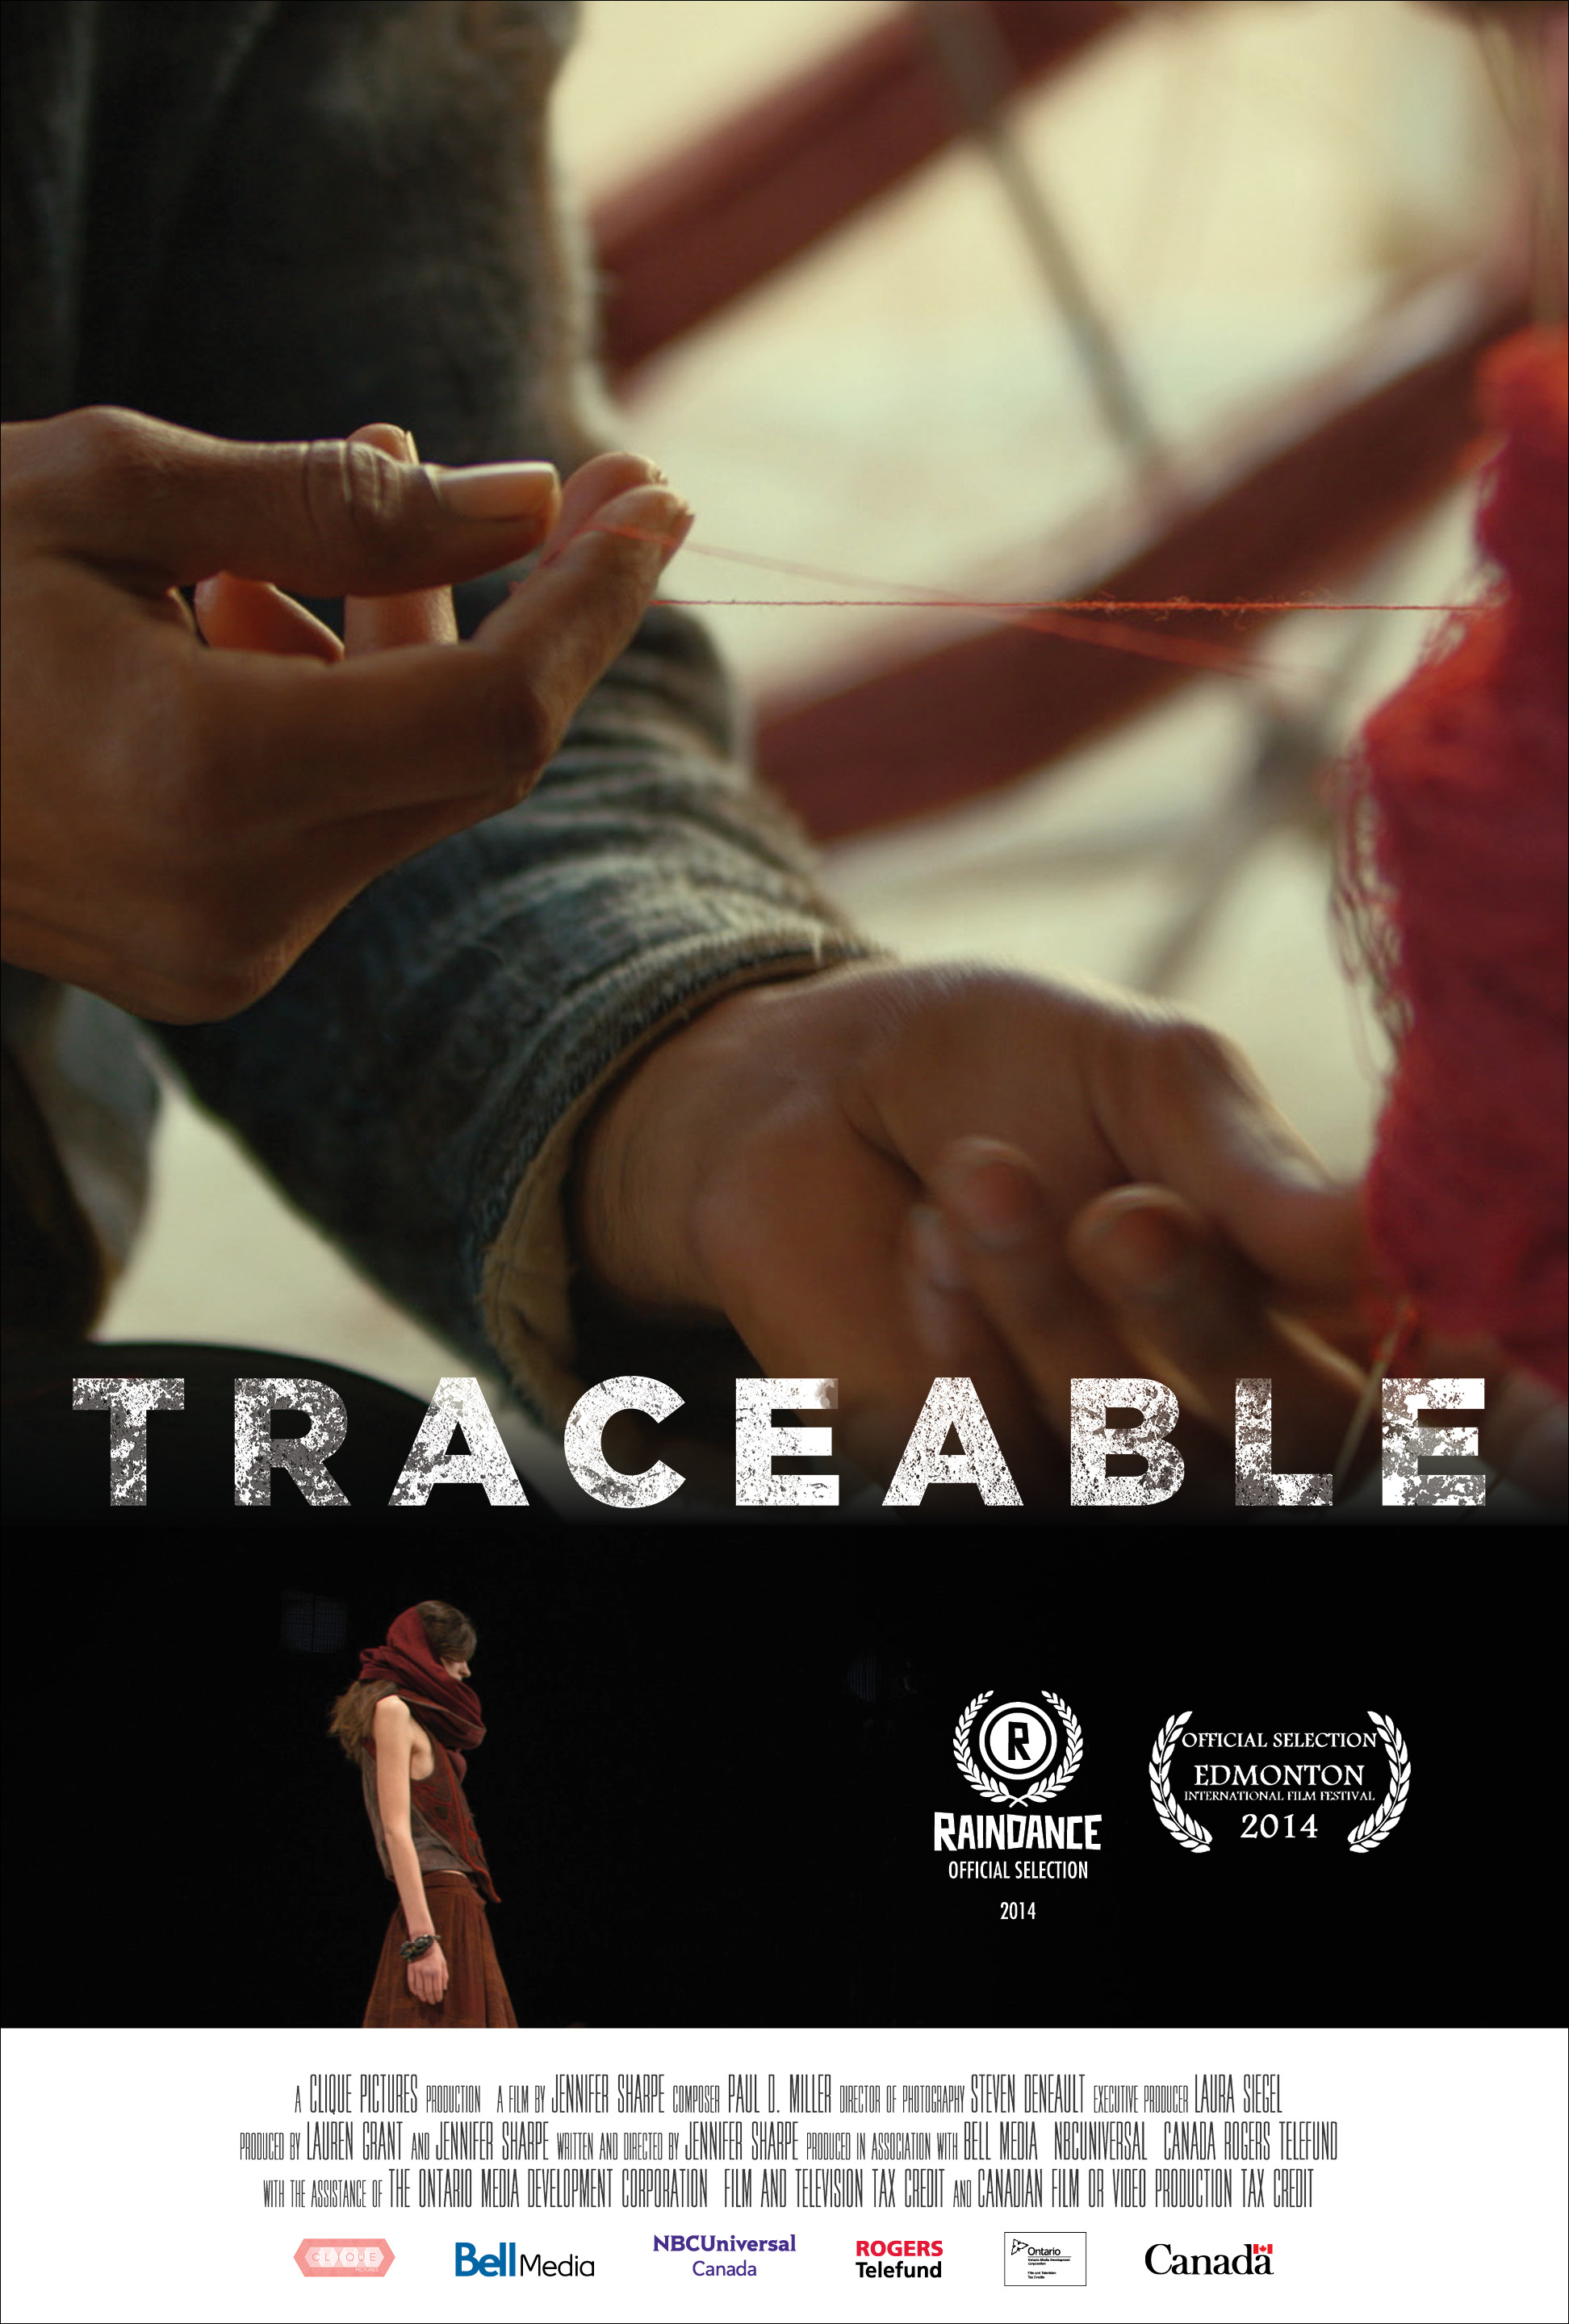 sYNOPSIS - Traceable is set against the backdrop of the fast-fashion industry and our increasing disconnect of where and how clothing is made, and the hands that create a garment. Interviews with traceability experts, intercut with emerging designer Laura Siegel's journey across India to produce her collection, the film explores our connection to the communities impacted by the products we consume.